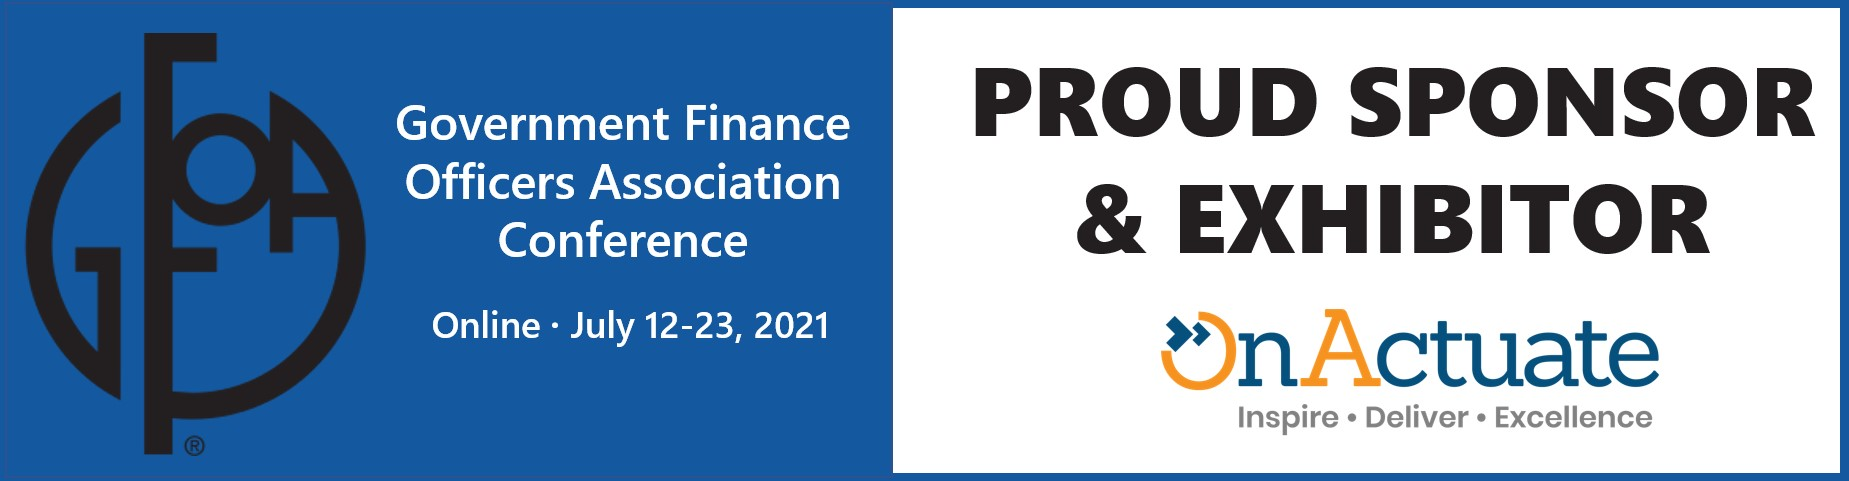 Microsoft Partner OnActuate Consulting to sponsor and exhibit at 2021 Government Finance Officers Association Virtual Conference